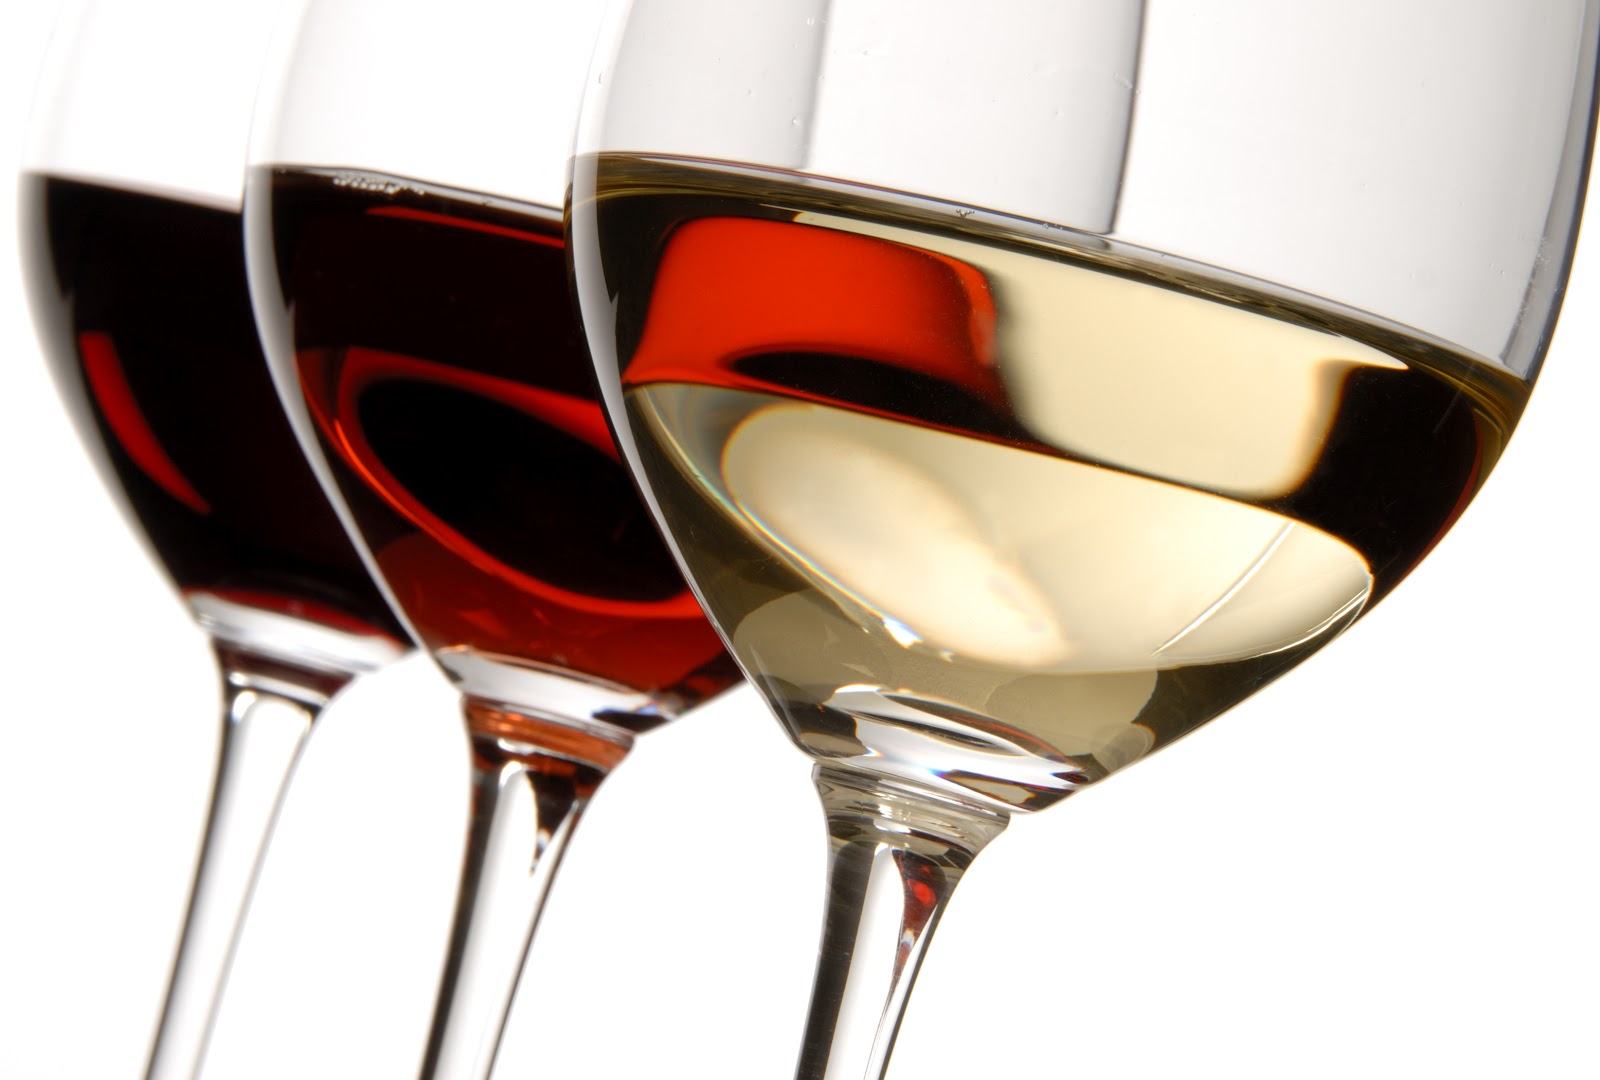 Because honesty, what's better than wine? - Jess Explains It All